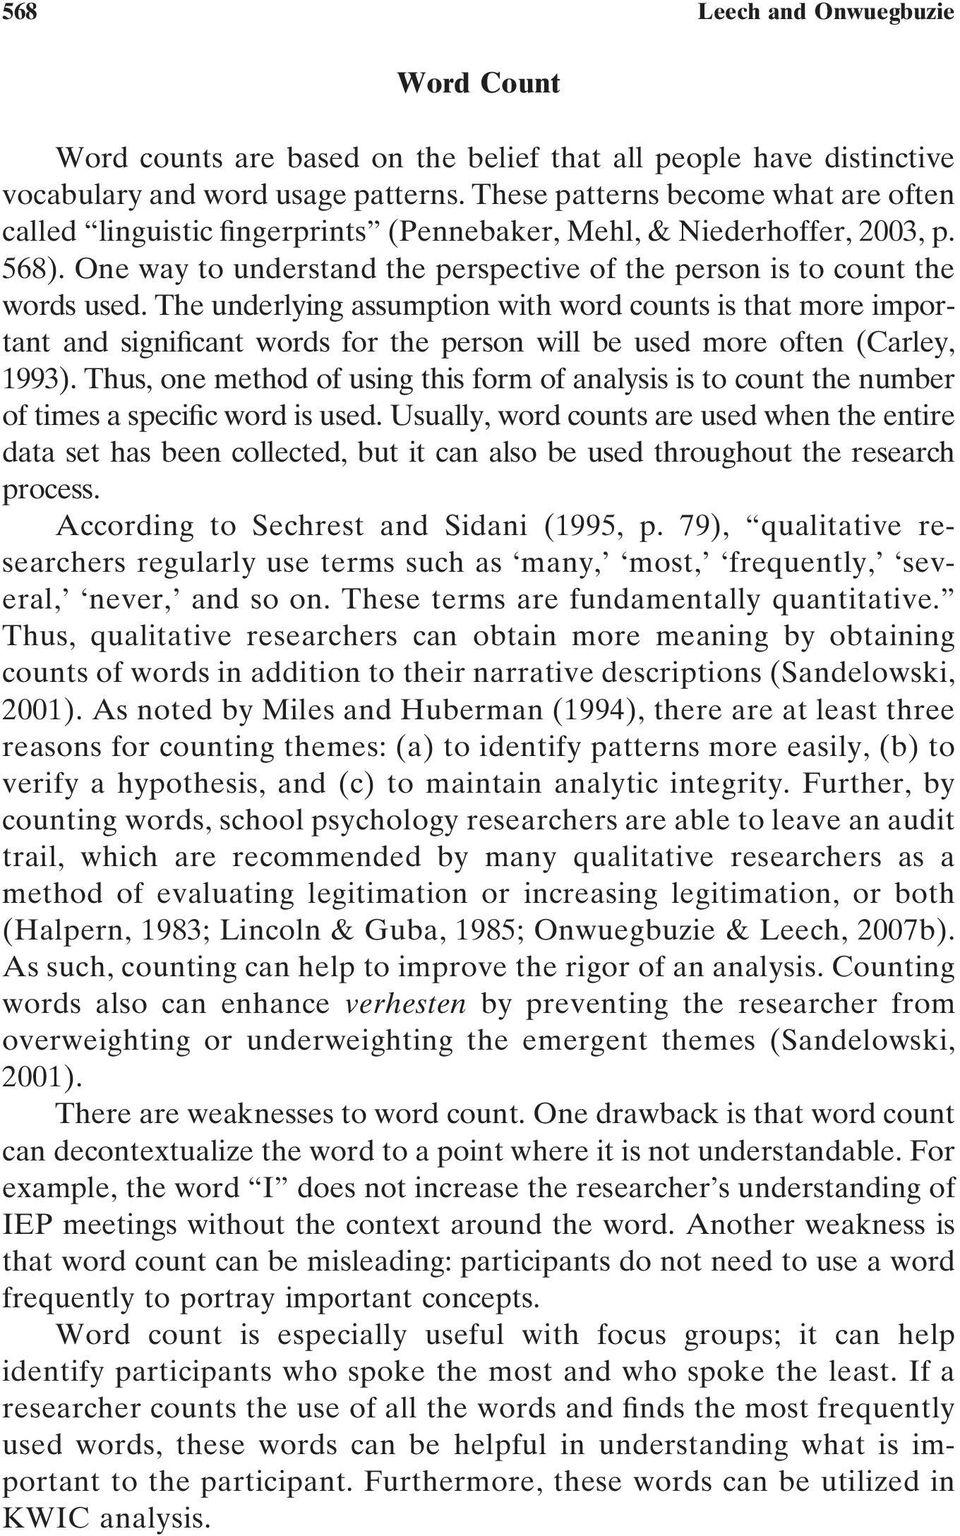 The underlying assumption with word counts is that more important and significant words for the person will be used more often (Carley, 1993).